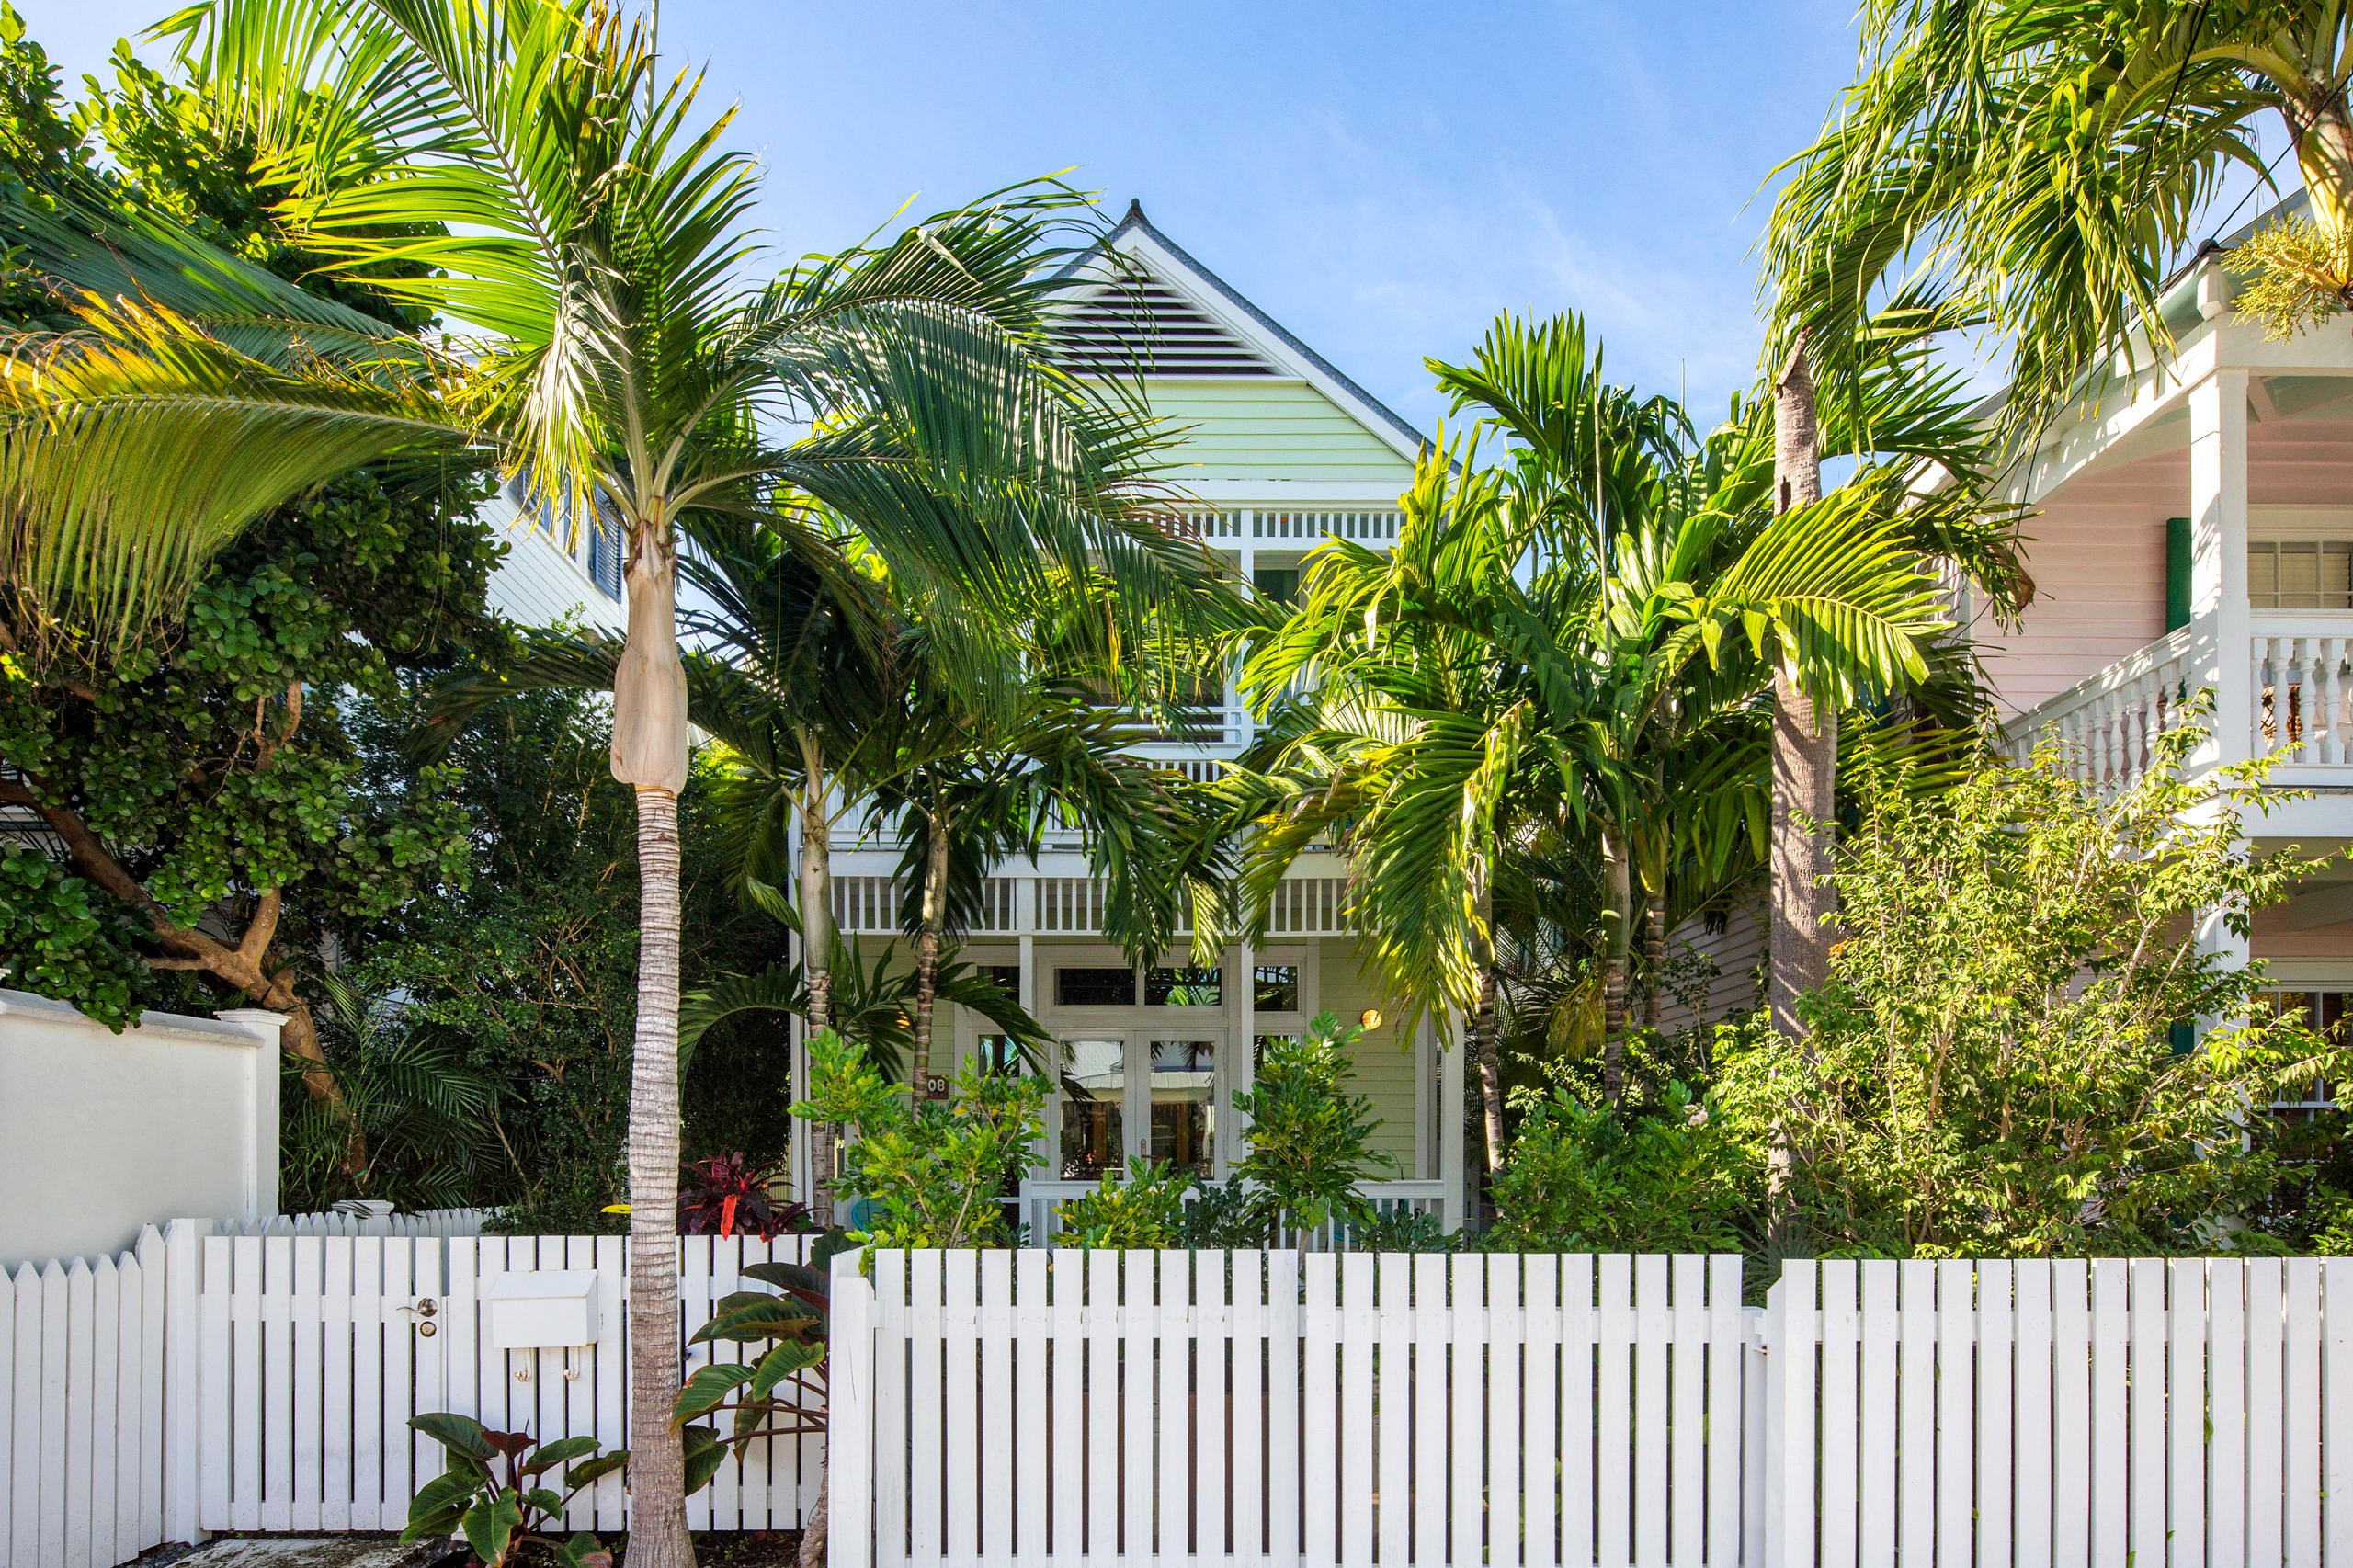 808 Ashe St, Key West - The Spanish Lime House